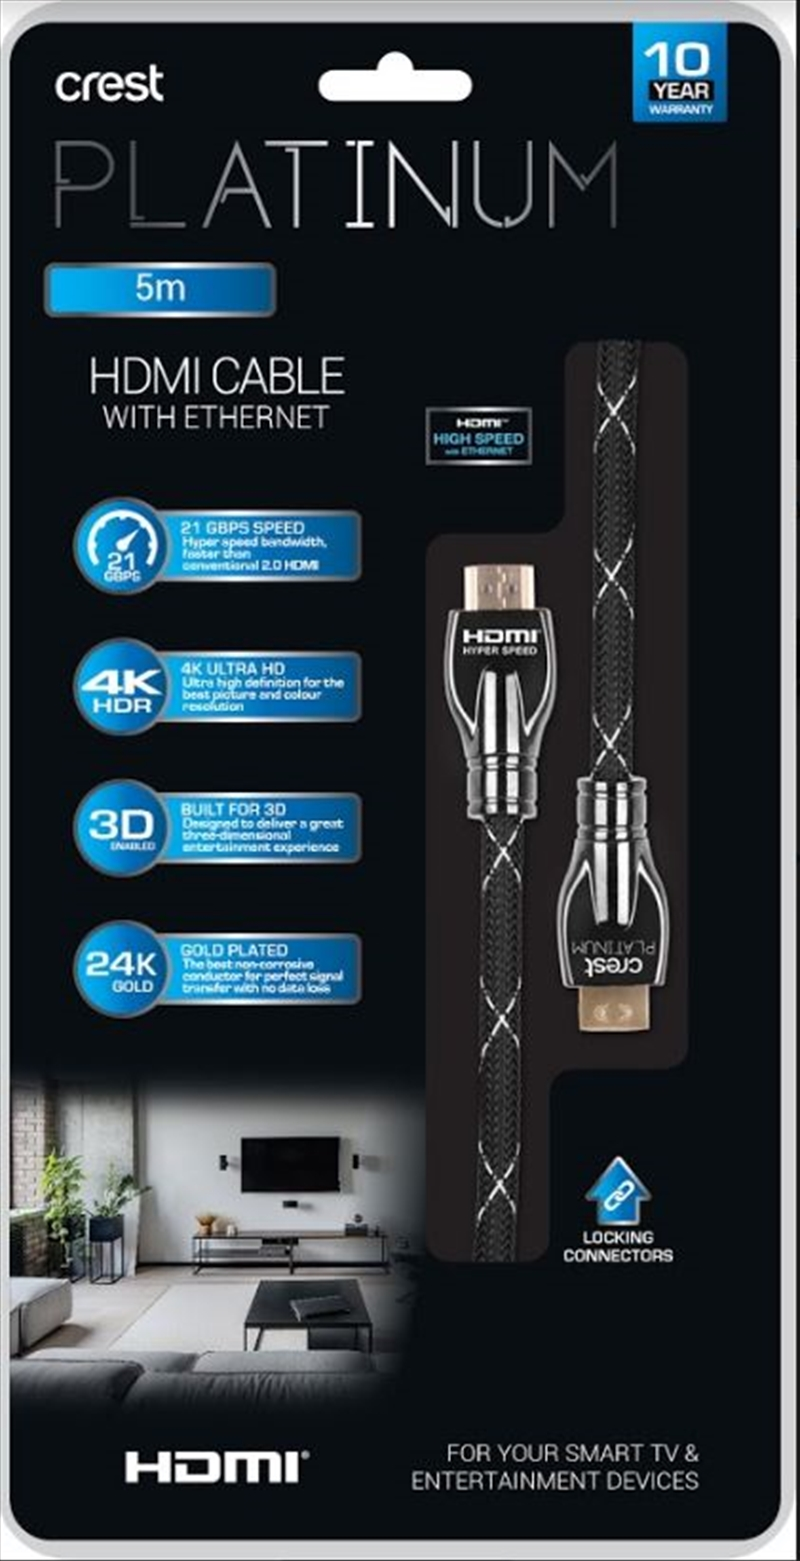 HDMI Cable With Ethernet - 5M | Accessories